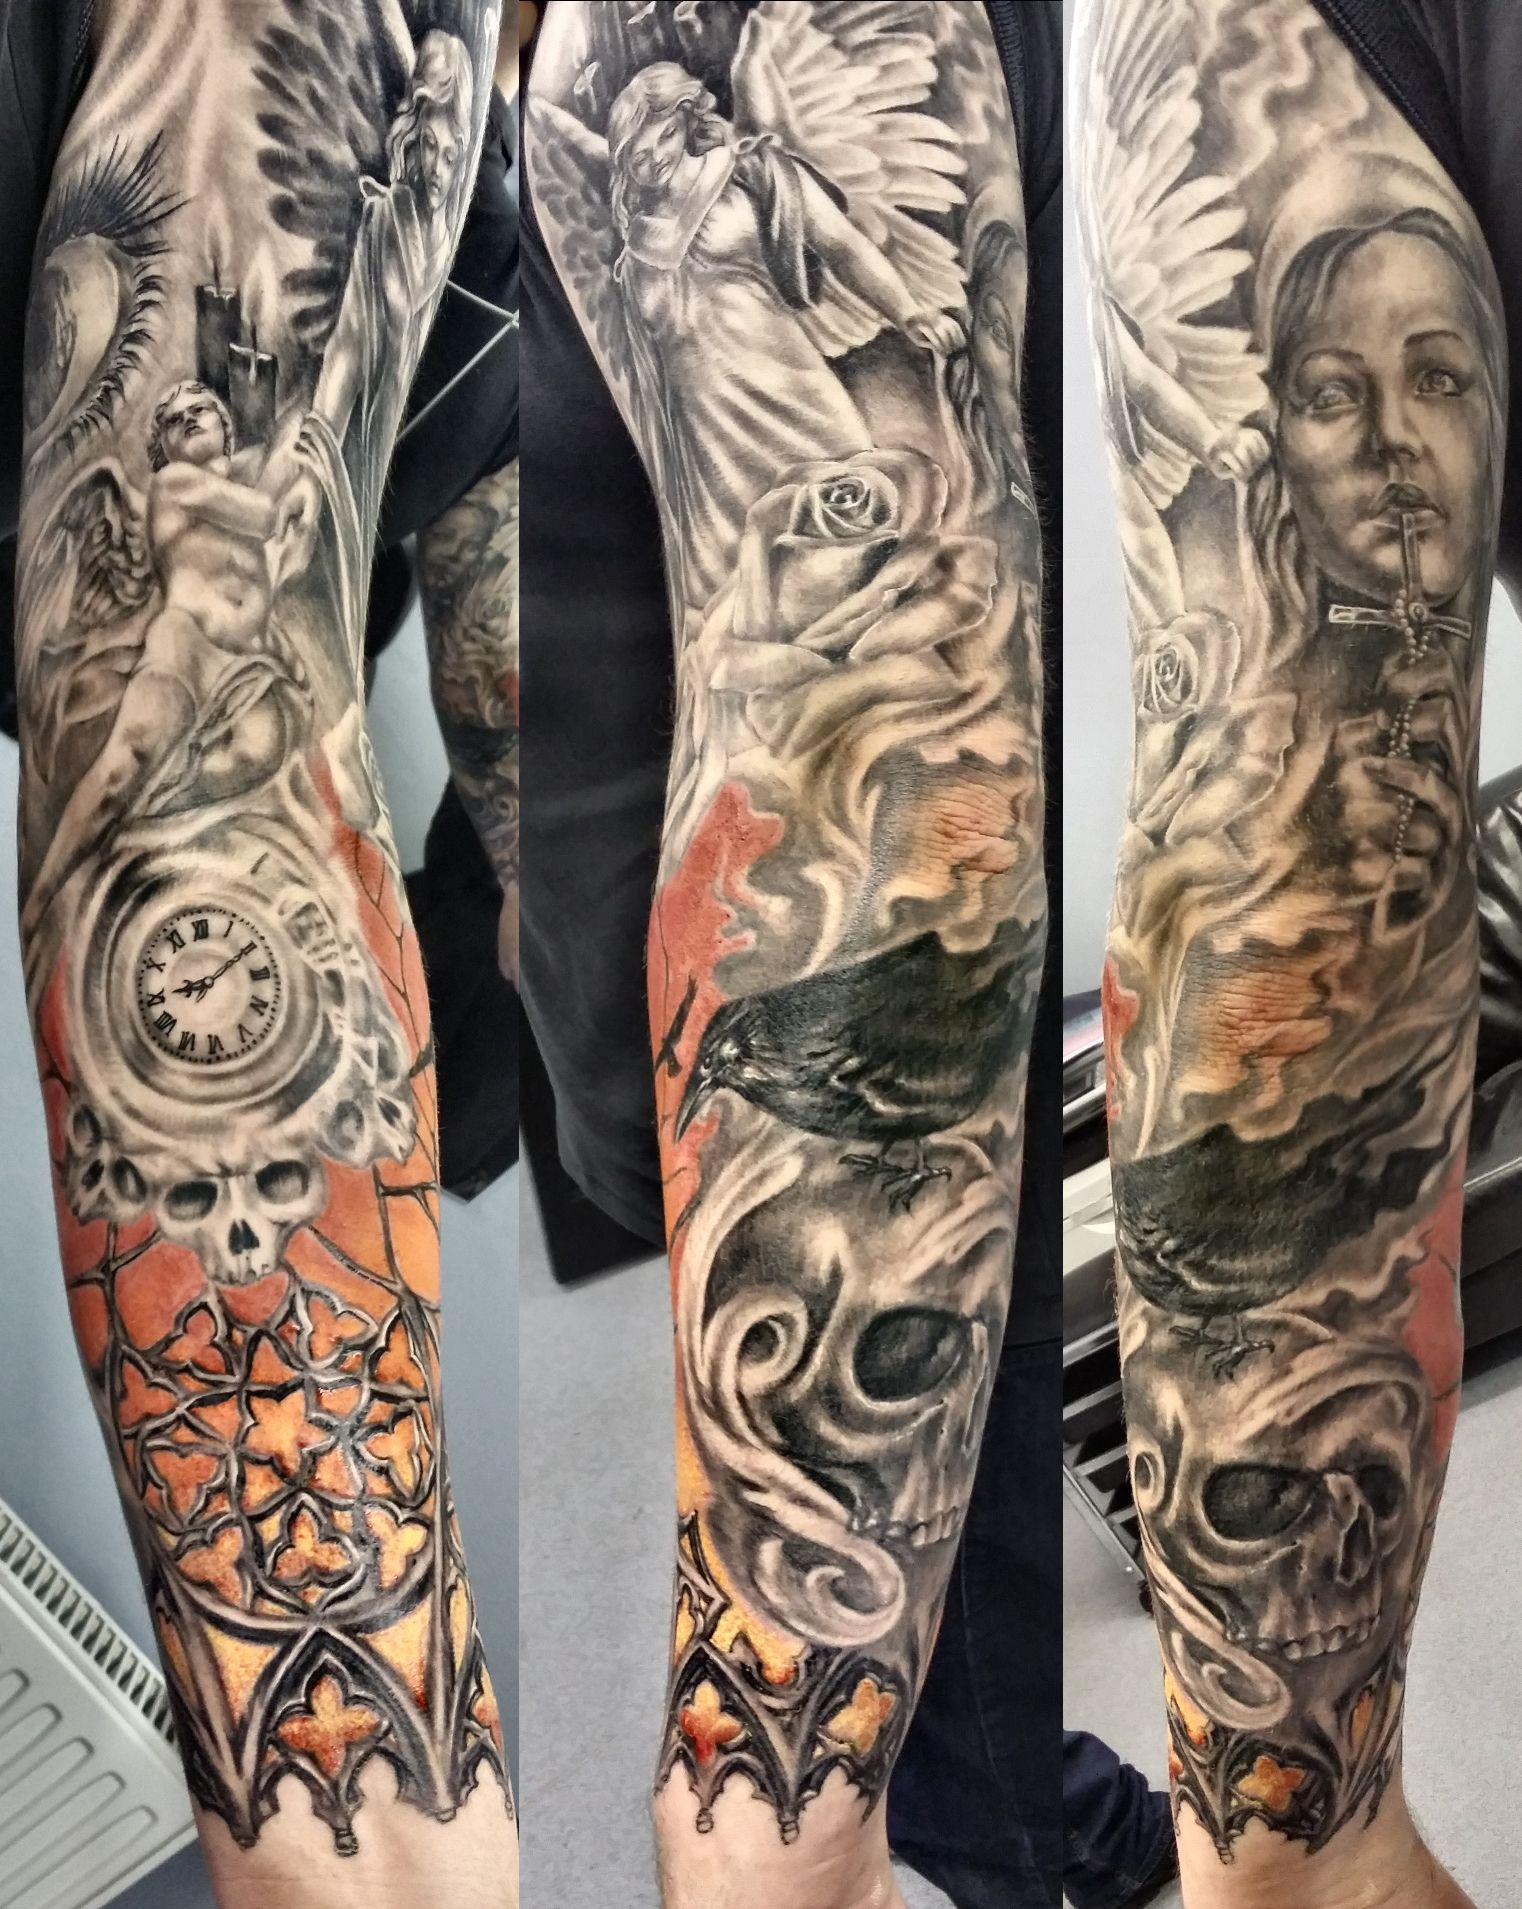 Cool Arm Sleeves Tattoos Spiritual: Pin By John Rodriguez On Tattoo Ideas